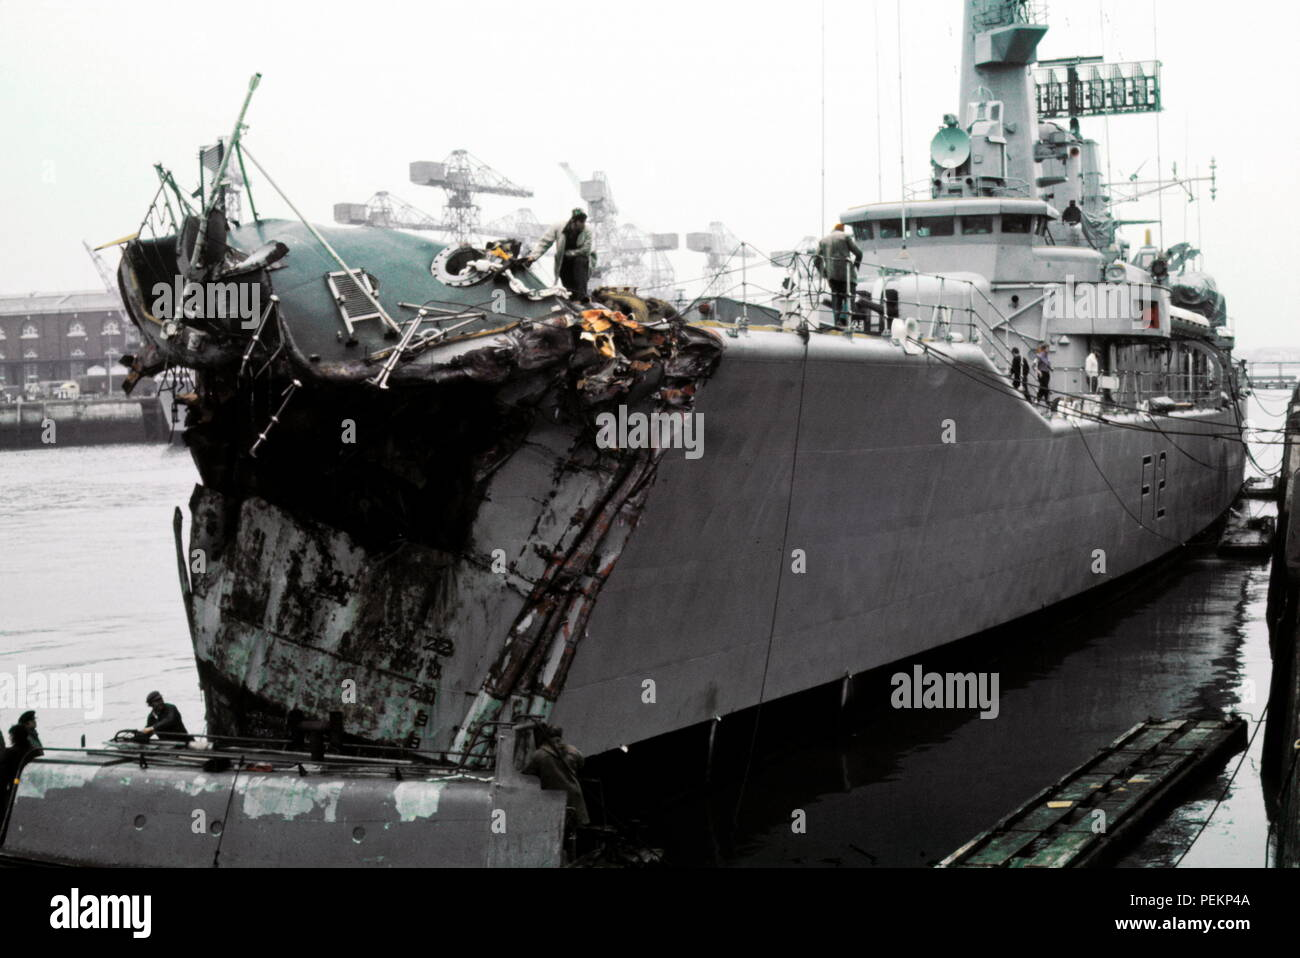 AJAXNETPHOTO.  13TH NOVEMBER, 1975. PORTSMOUTH, ENGLAND. - CRUNCH! - PICTURED ALONGSIDE AT THE NAVAL BASE DOCKYARD WITH 14 FEET OF HER BOW SMASHED; THE GP LEANDER CLASS FRIGATE HMS ACHILLES (2500 TONS). THE FRIGATE COLLIDED WITH LIBERIAN OIL TANKER OLYMPIC ALLIANCE 1 MILES S.E. OF DOVER NEAR VARNE LIGHTSHIP ON NIGHT OF 12/13 NOV 1975. THREE CREWMEN ON ACHILLES WERE INJURED. PHOTO:JONATHAN EASTLAND/AJAX REF:401279_1 Stock Photo